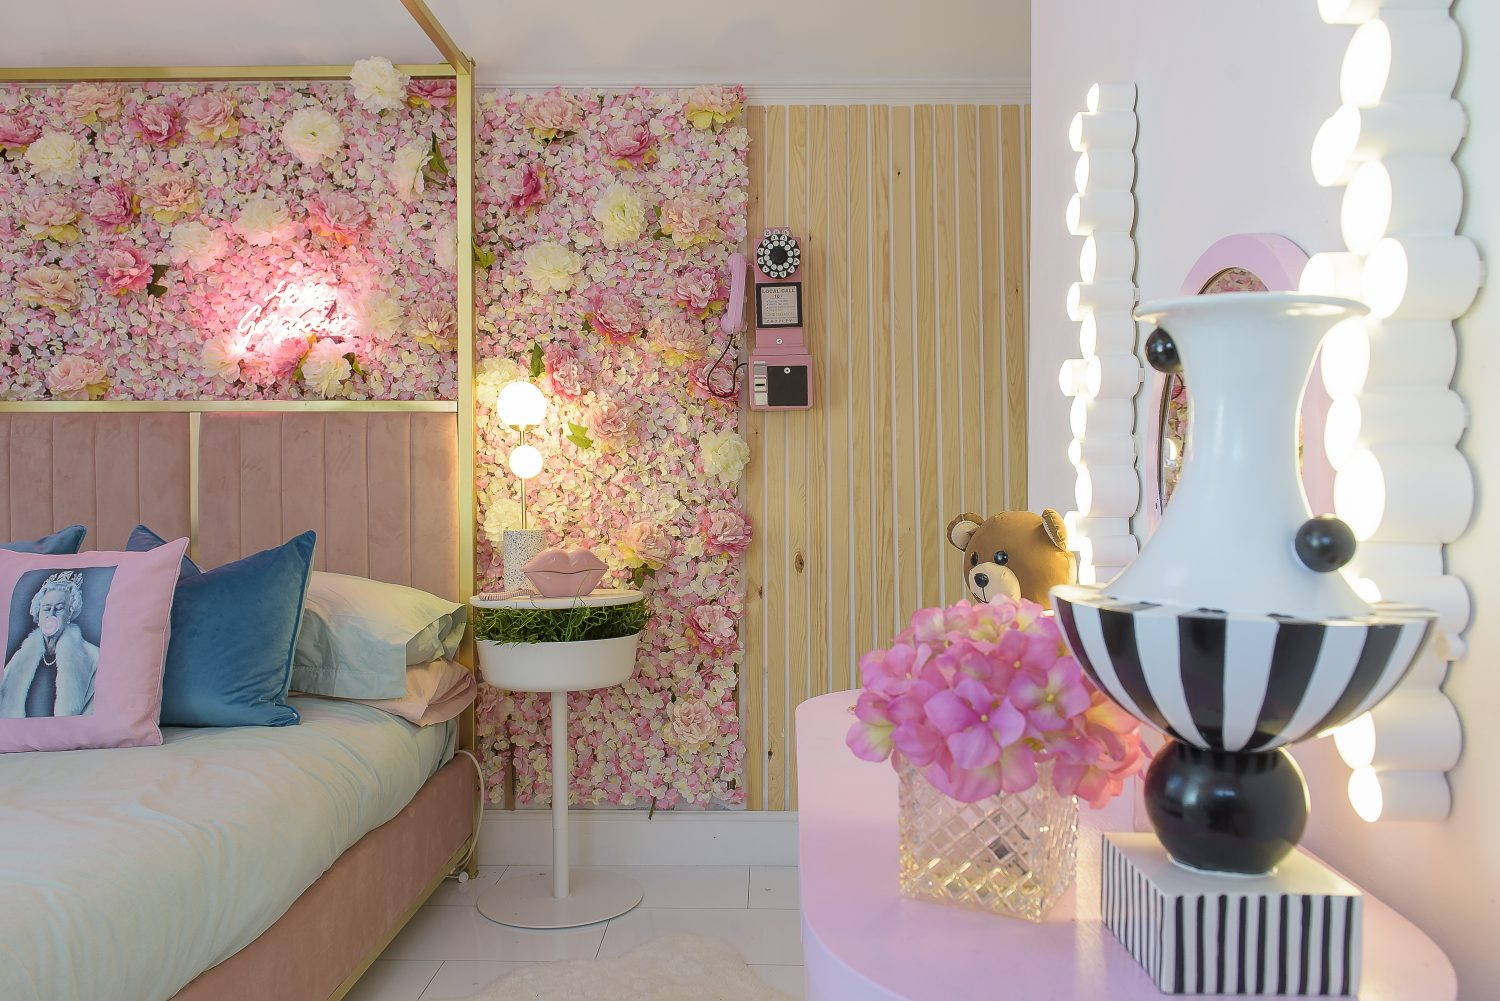 Cat's youngest daughter's bedroom has been her most recent project. With a brass four-poster bed and a wall of pink silk flowers, she chose the room's decor inspired by the interiors of MaMa Kelly's pink restaurant in Amsterdam and the Peggy Porschen cake parlour